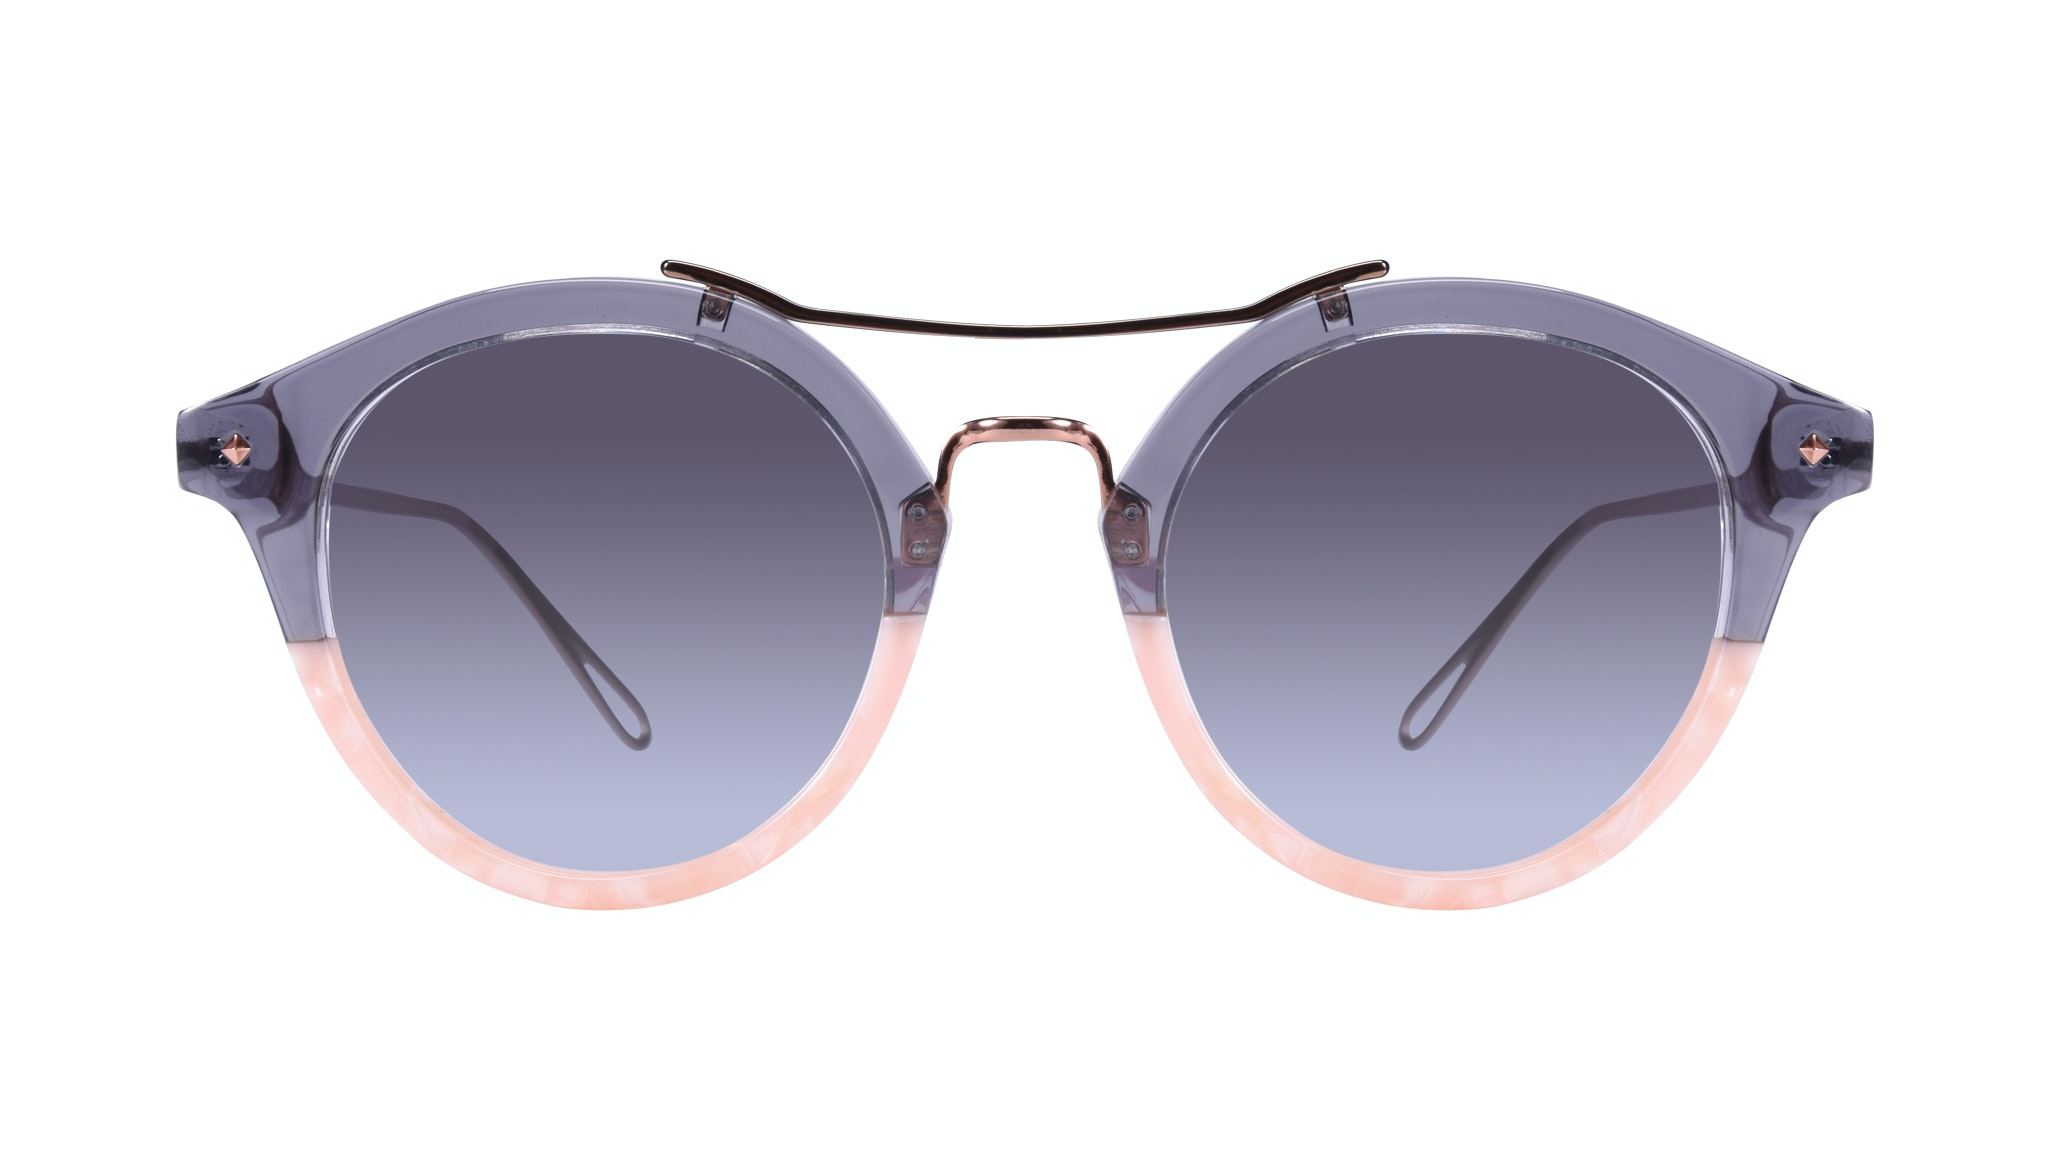 Affordable Fashion Glasses Round Sunglasses Women Infinite Rose Shadow Front